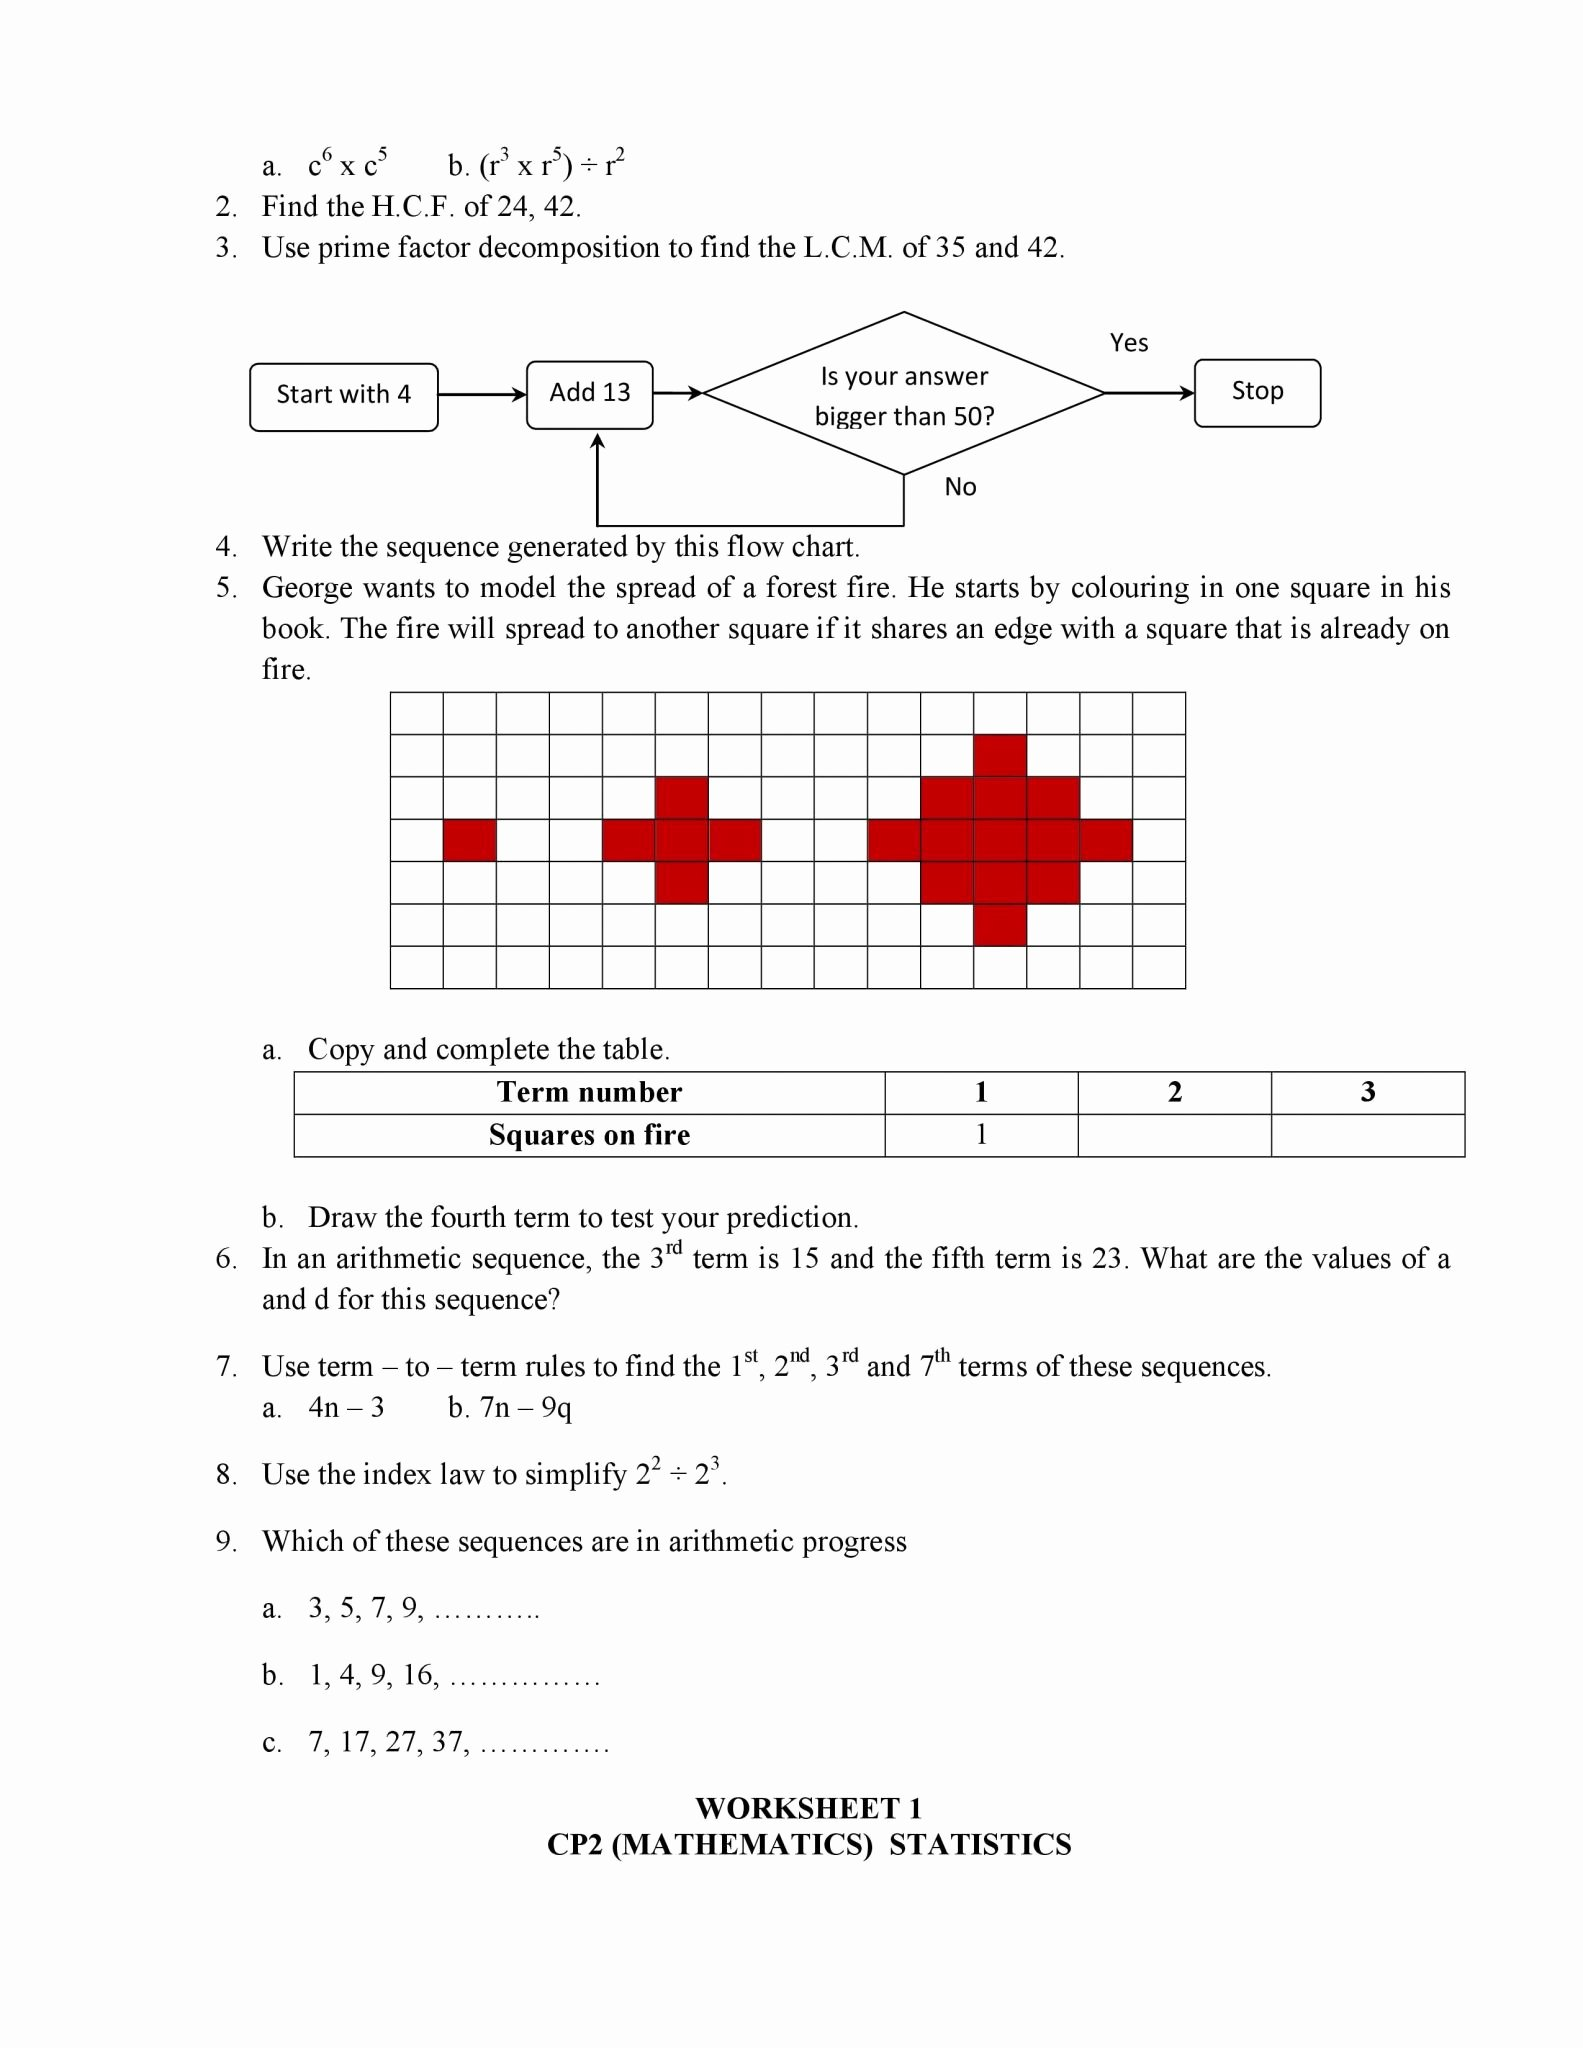 Arithmetic Sequence Worksheet Answers Awesome Arithmetic Sequences Worksheet 1 Answer Key